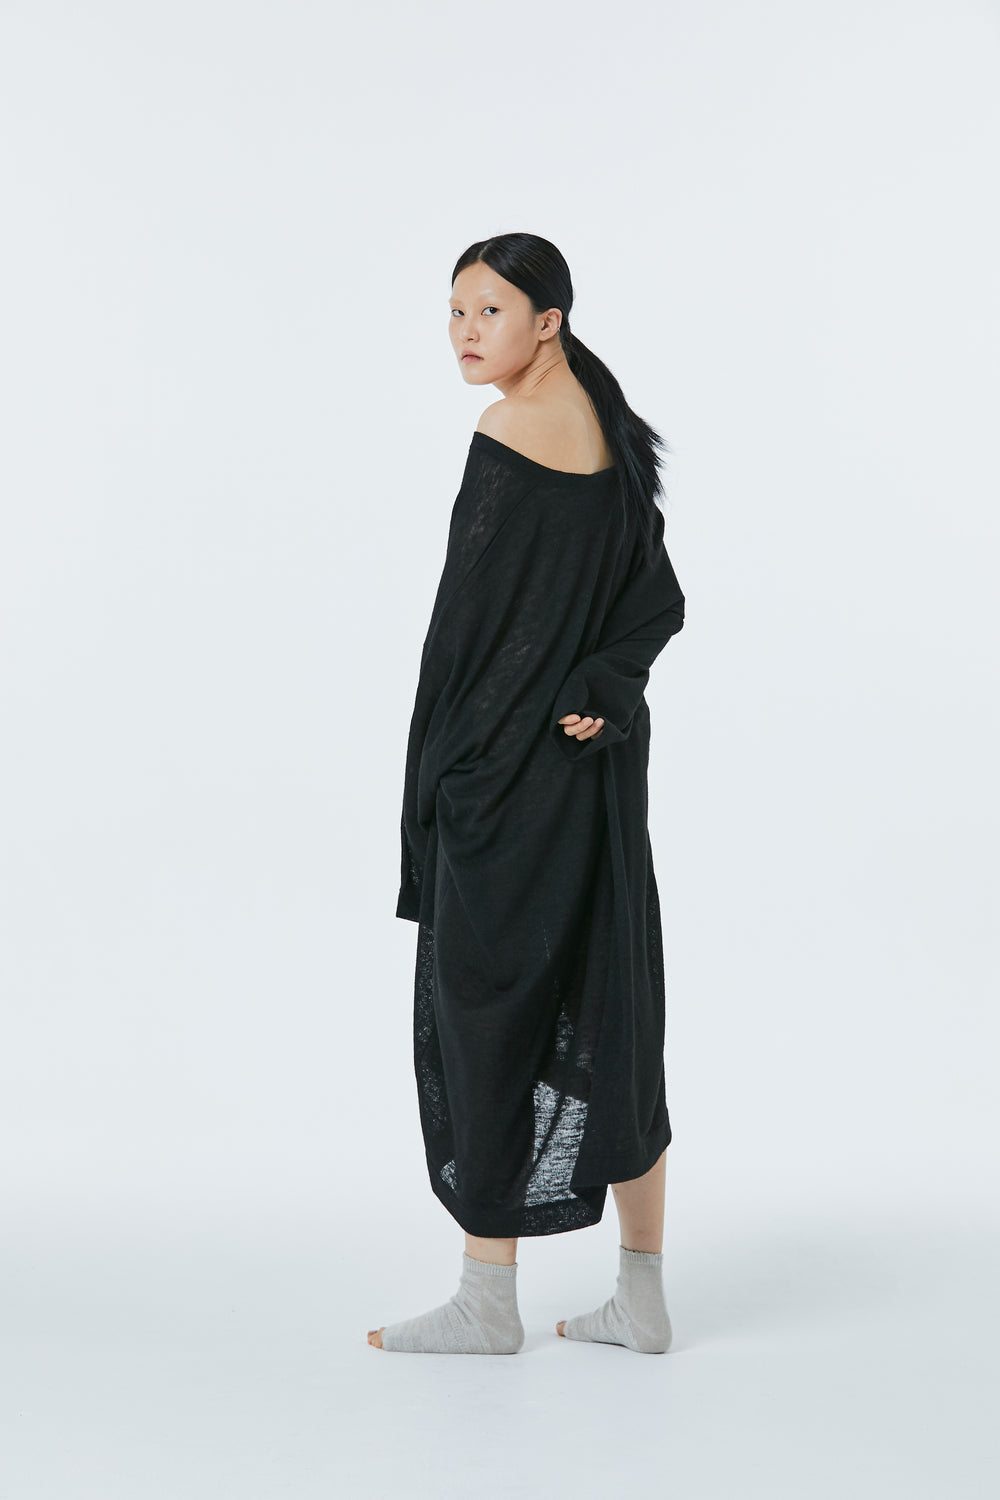 [Off season discount] FW20 Unisex Oversized Knitted Long Cardigan